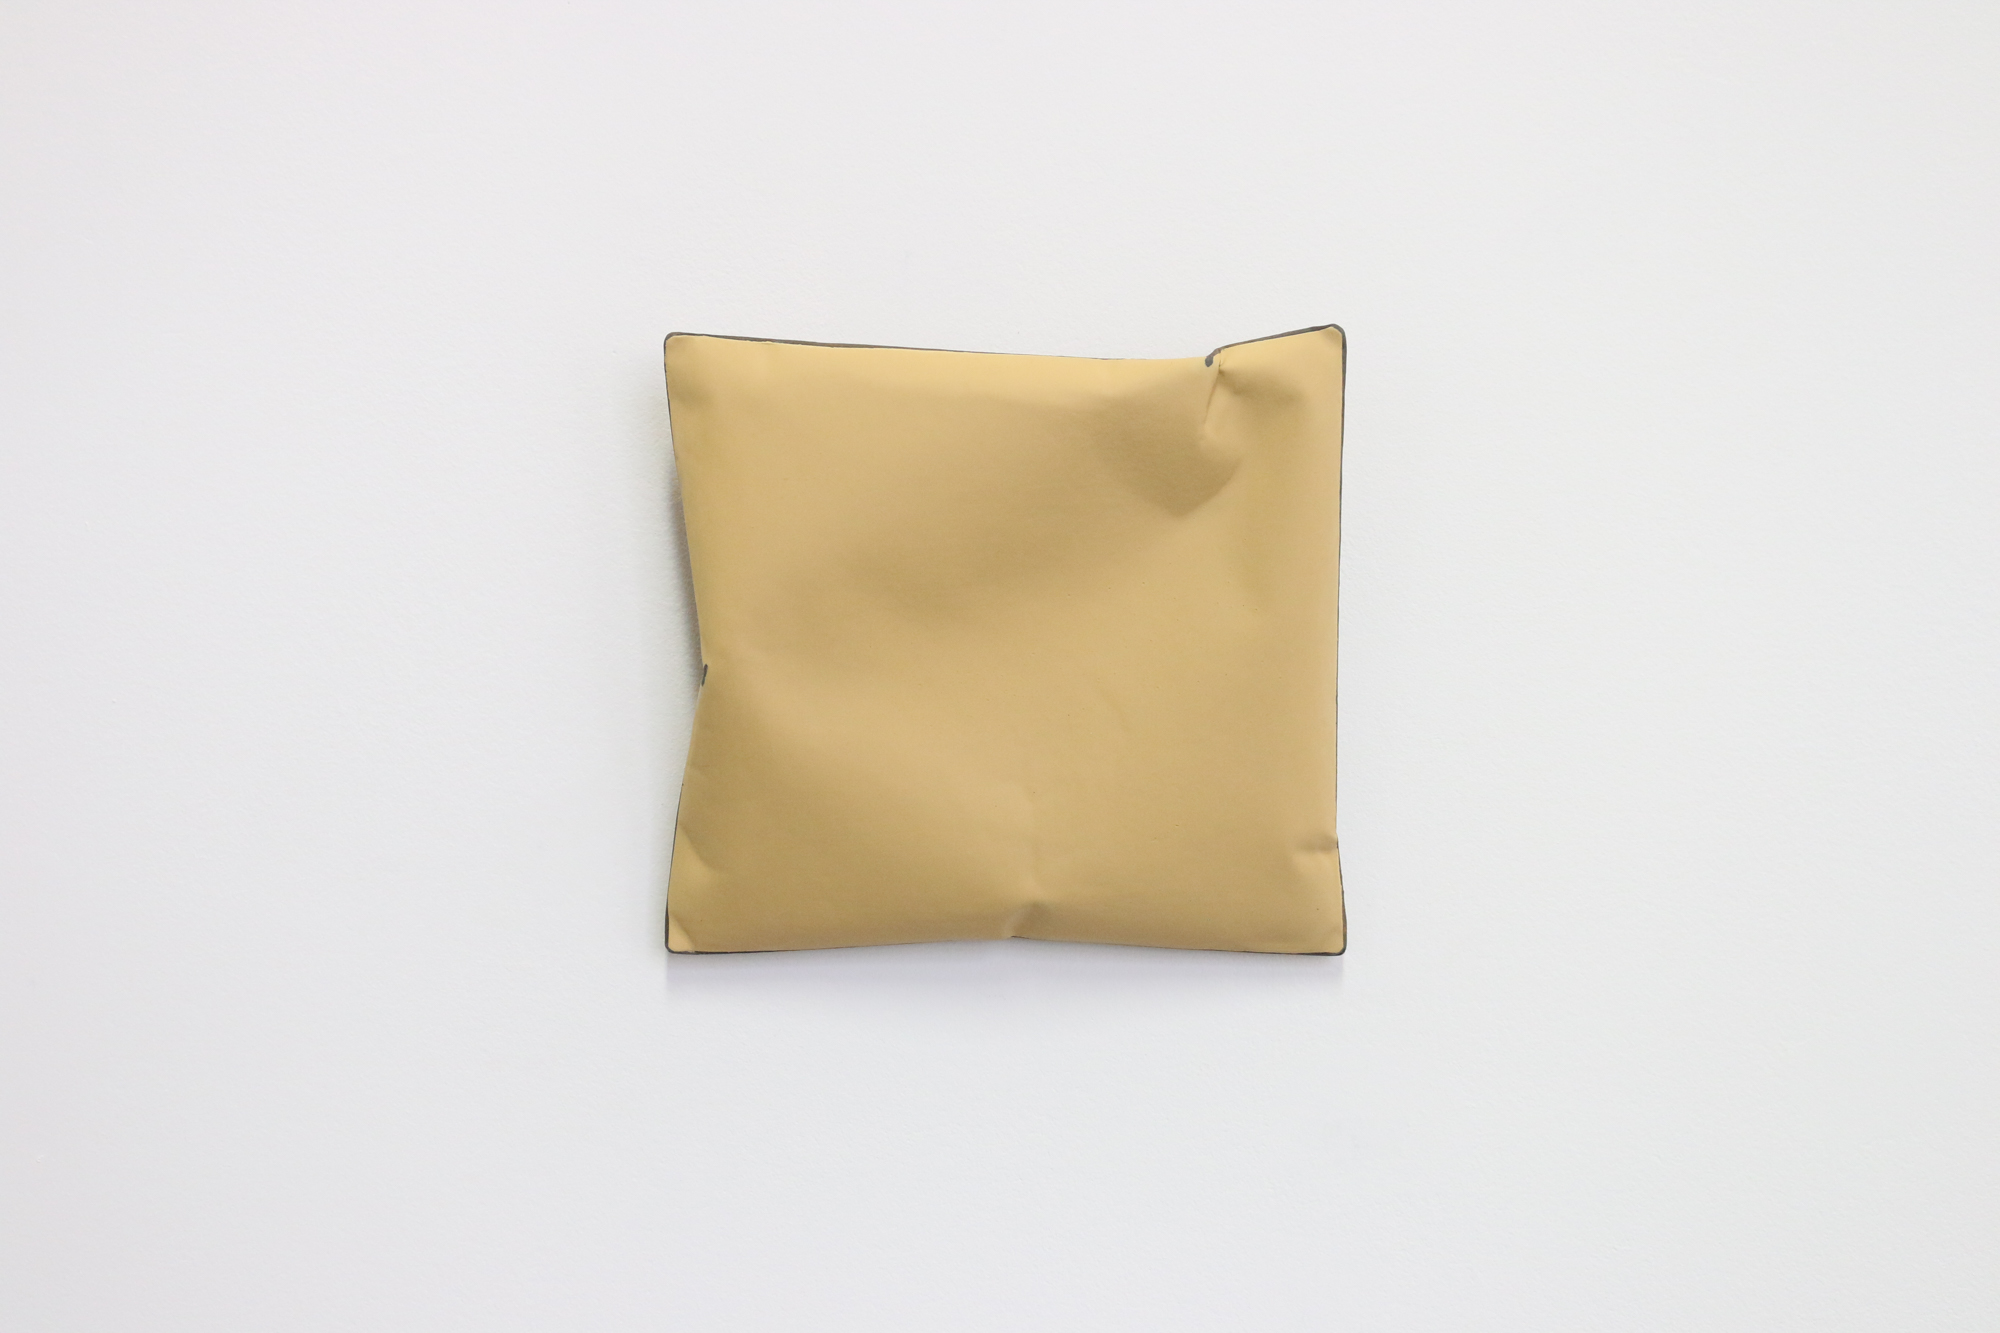 Johan De Wit, Untitled, 2019, Acrylic, Marble, Resin on Paper, 23x21x6 cm, Affinity Art.jpg